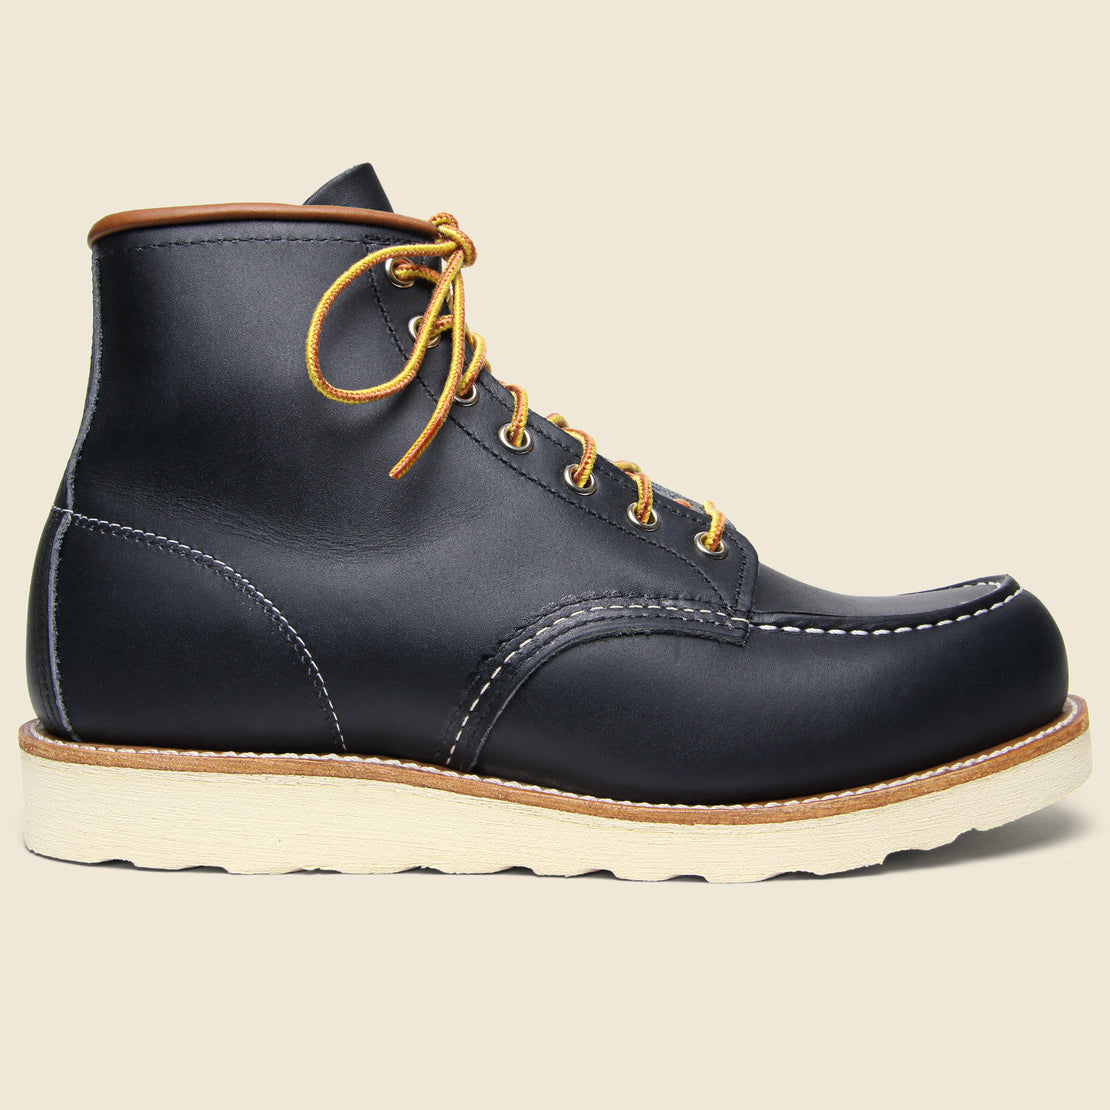 "Red Wing 6"" Moc Toe No. 8859 - Navy Portage"